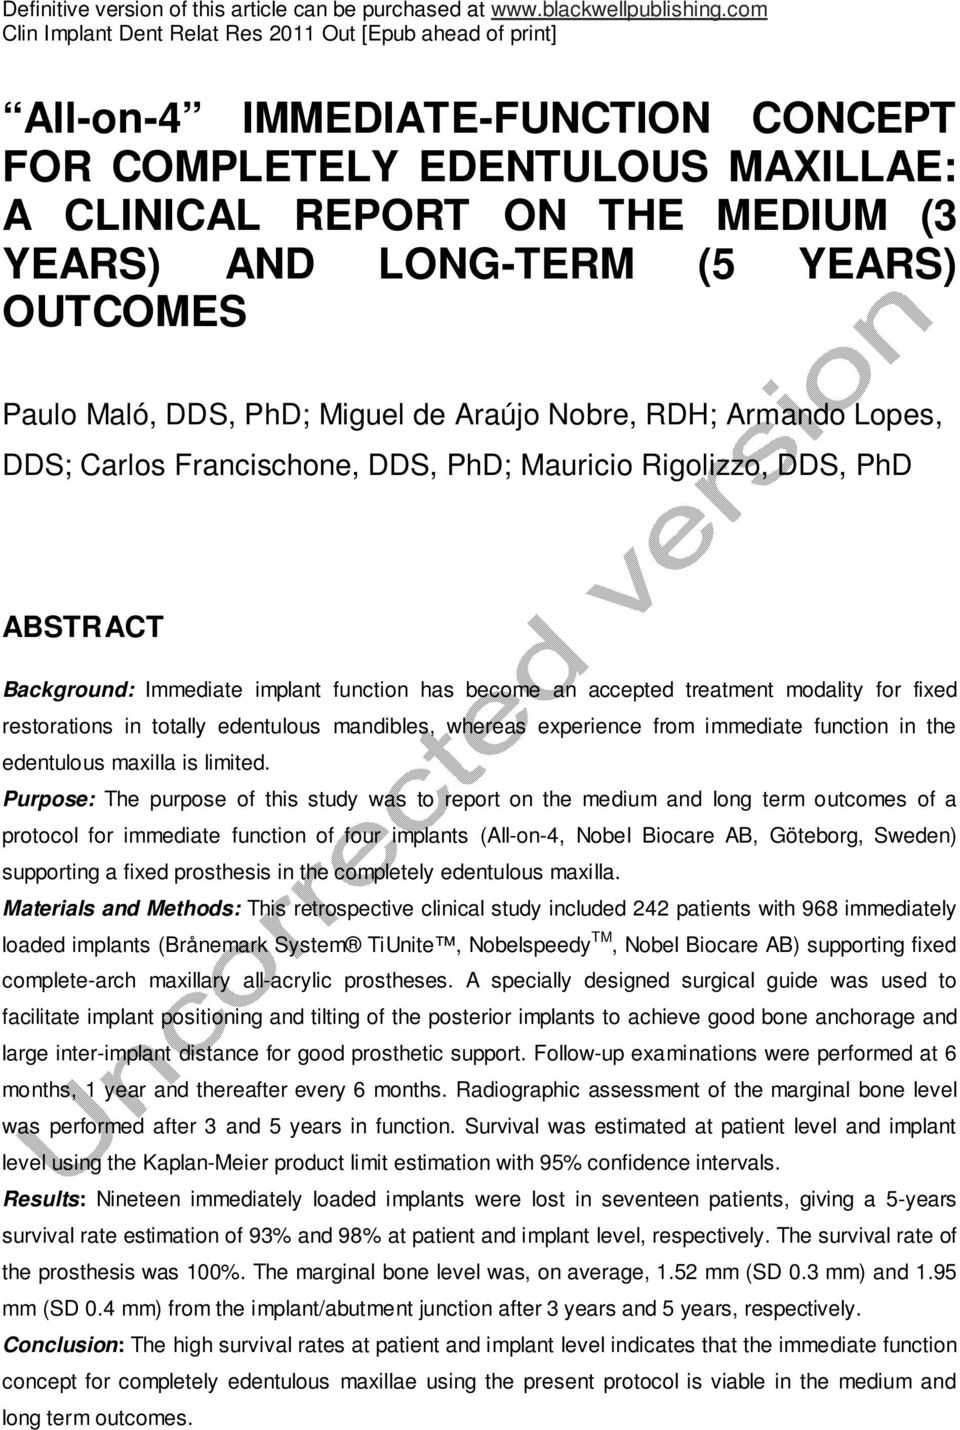 YEARS) OUTCOMES Paulo Maló, DDS, PhD; Miguel de Araújo Nobre, RDH; Armando Lopes, DDS; Carlos Francischone, DDS, PhD; Mauricio Rigolizzo, DDS, PhD ABSTRACT Background: Immediate implant function has